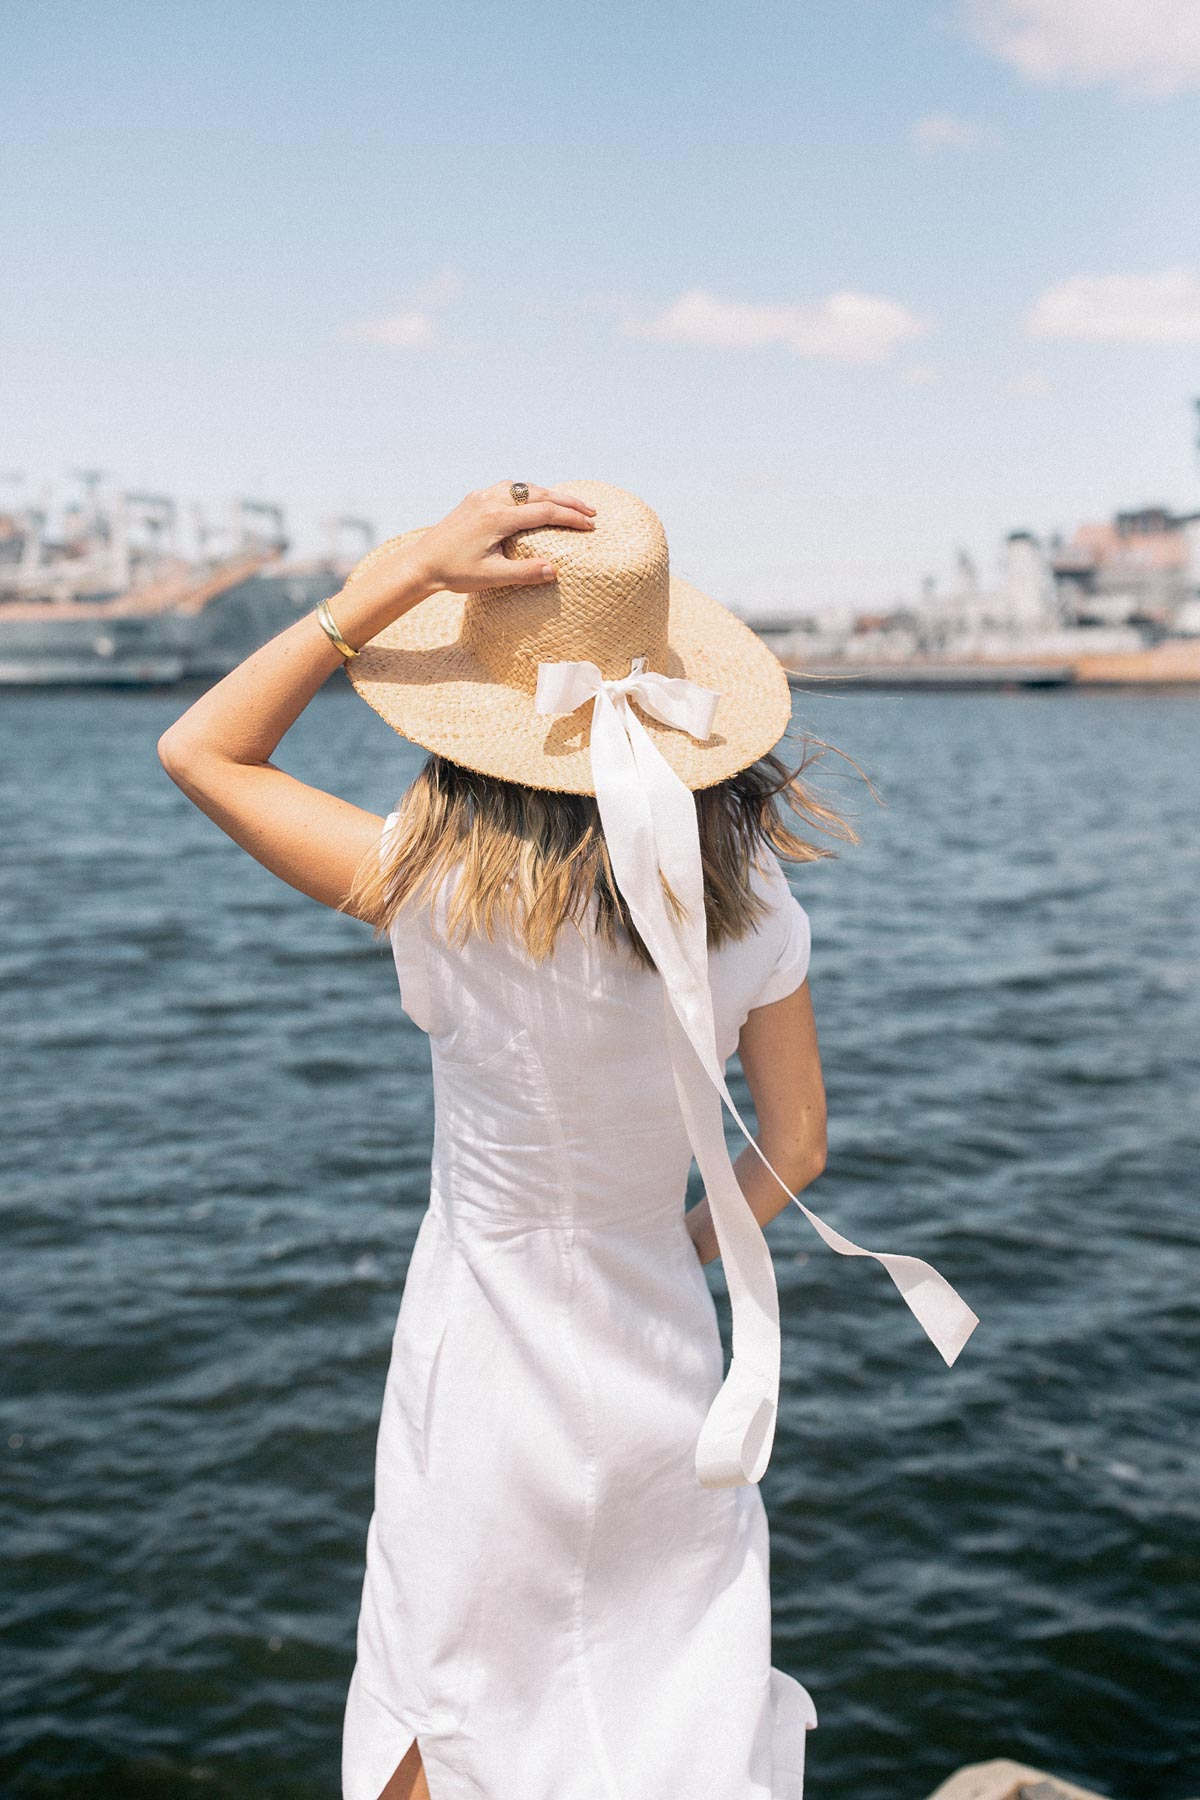 Jess Ann Kirby spends 48 hours in Philadelphia in a straw hat and white dress from Anthropologie.